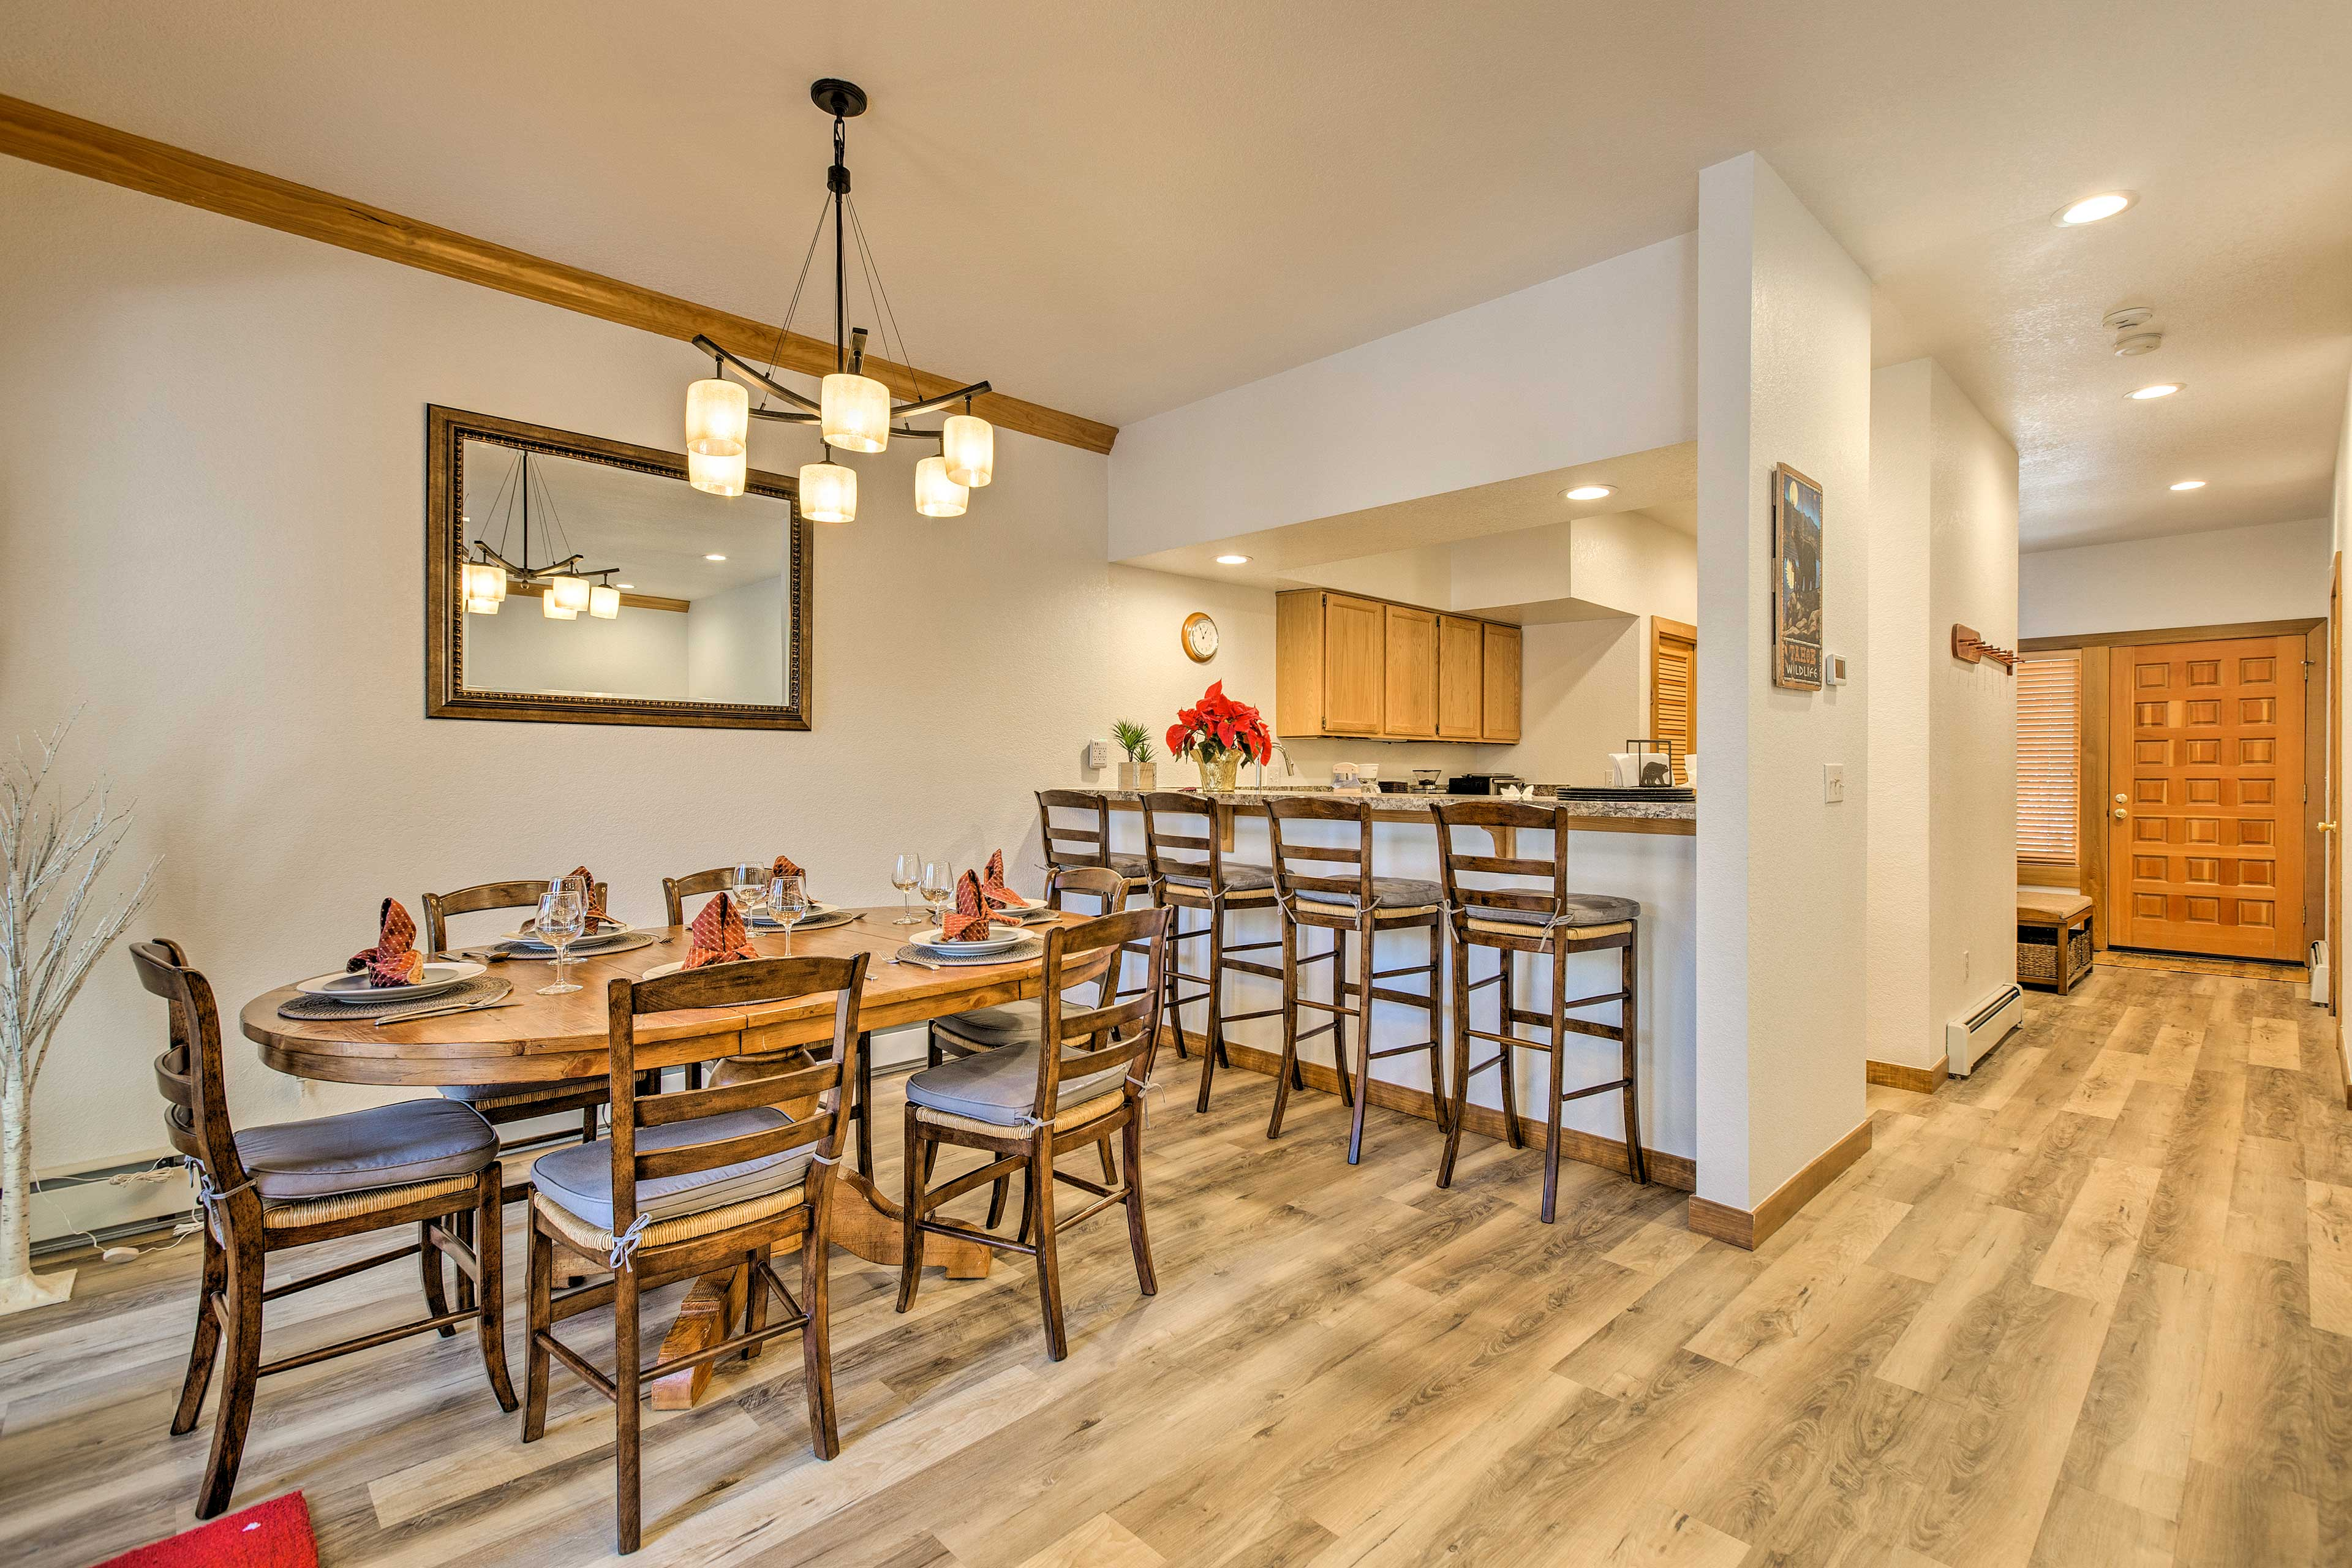 With a 6-person dining table and 4-person bar, you'll never run out of seats!